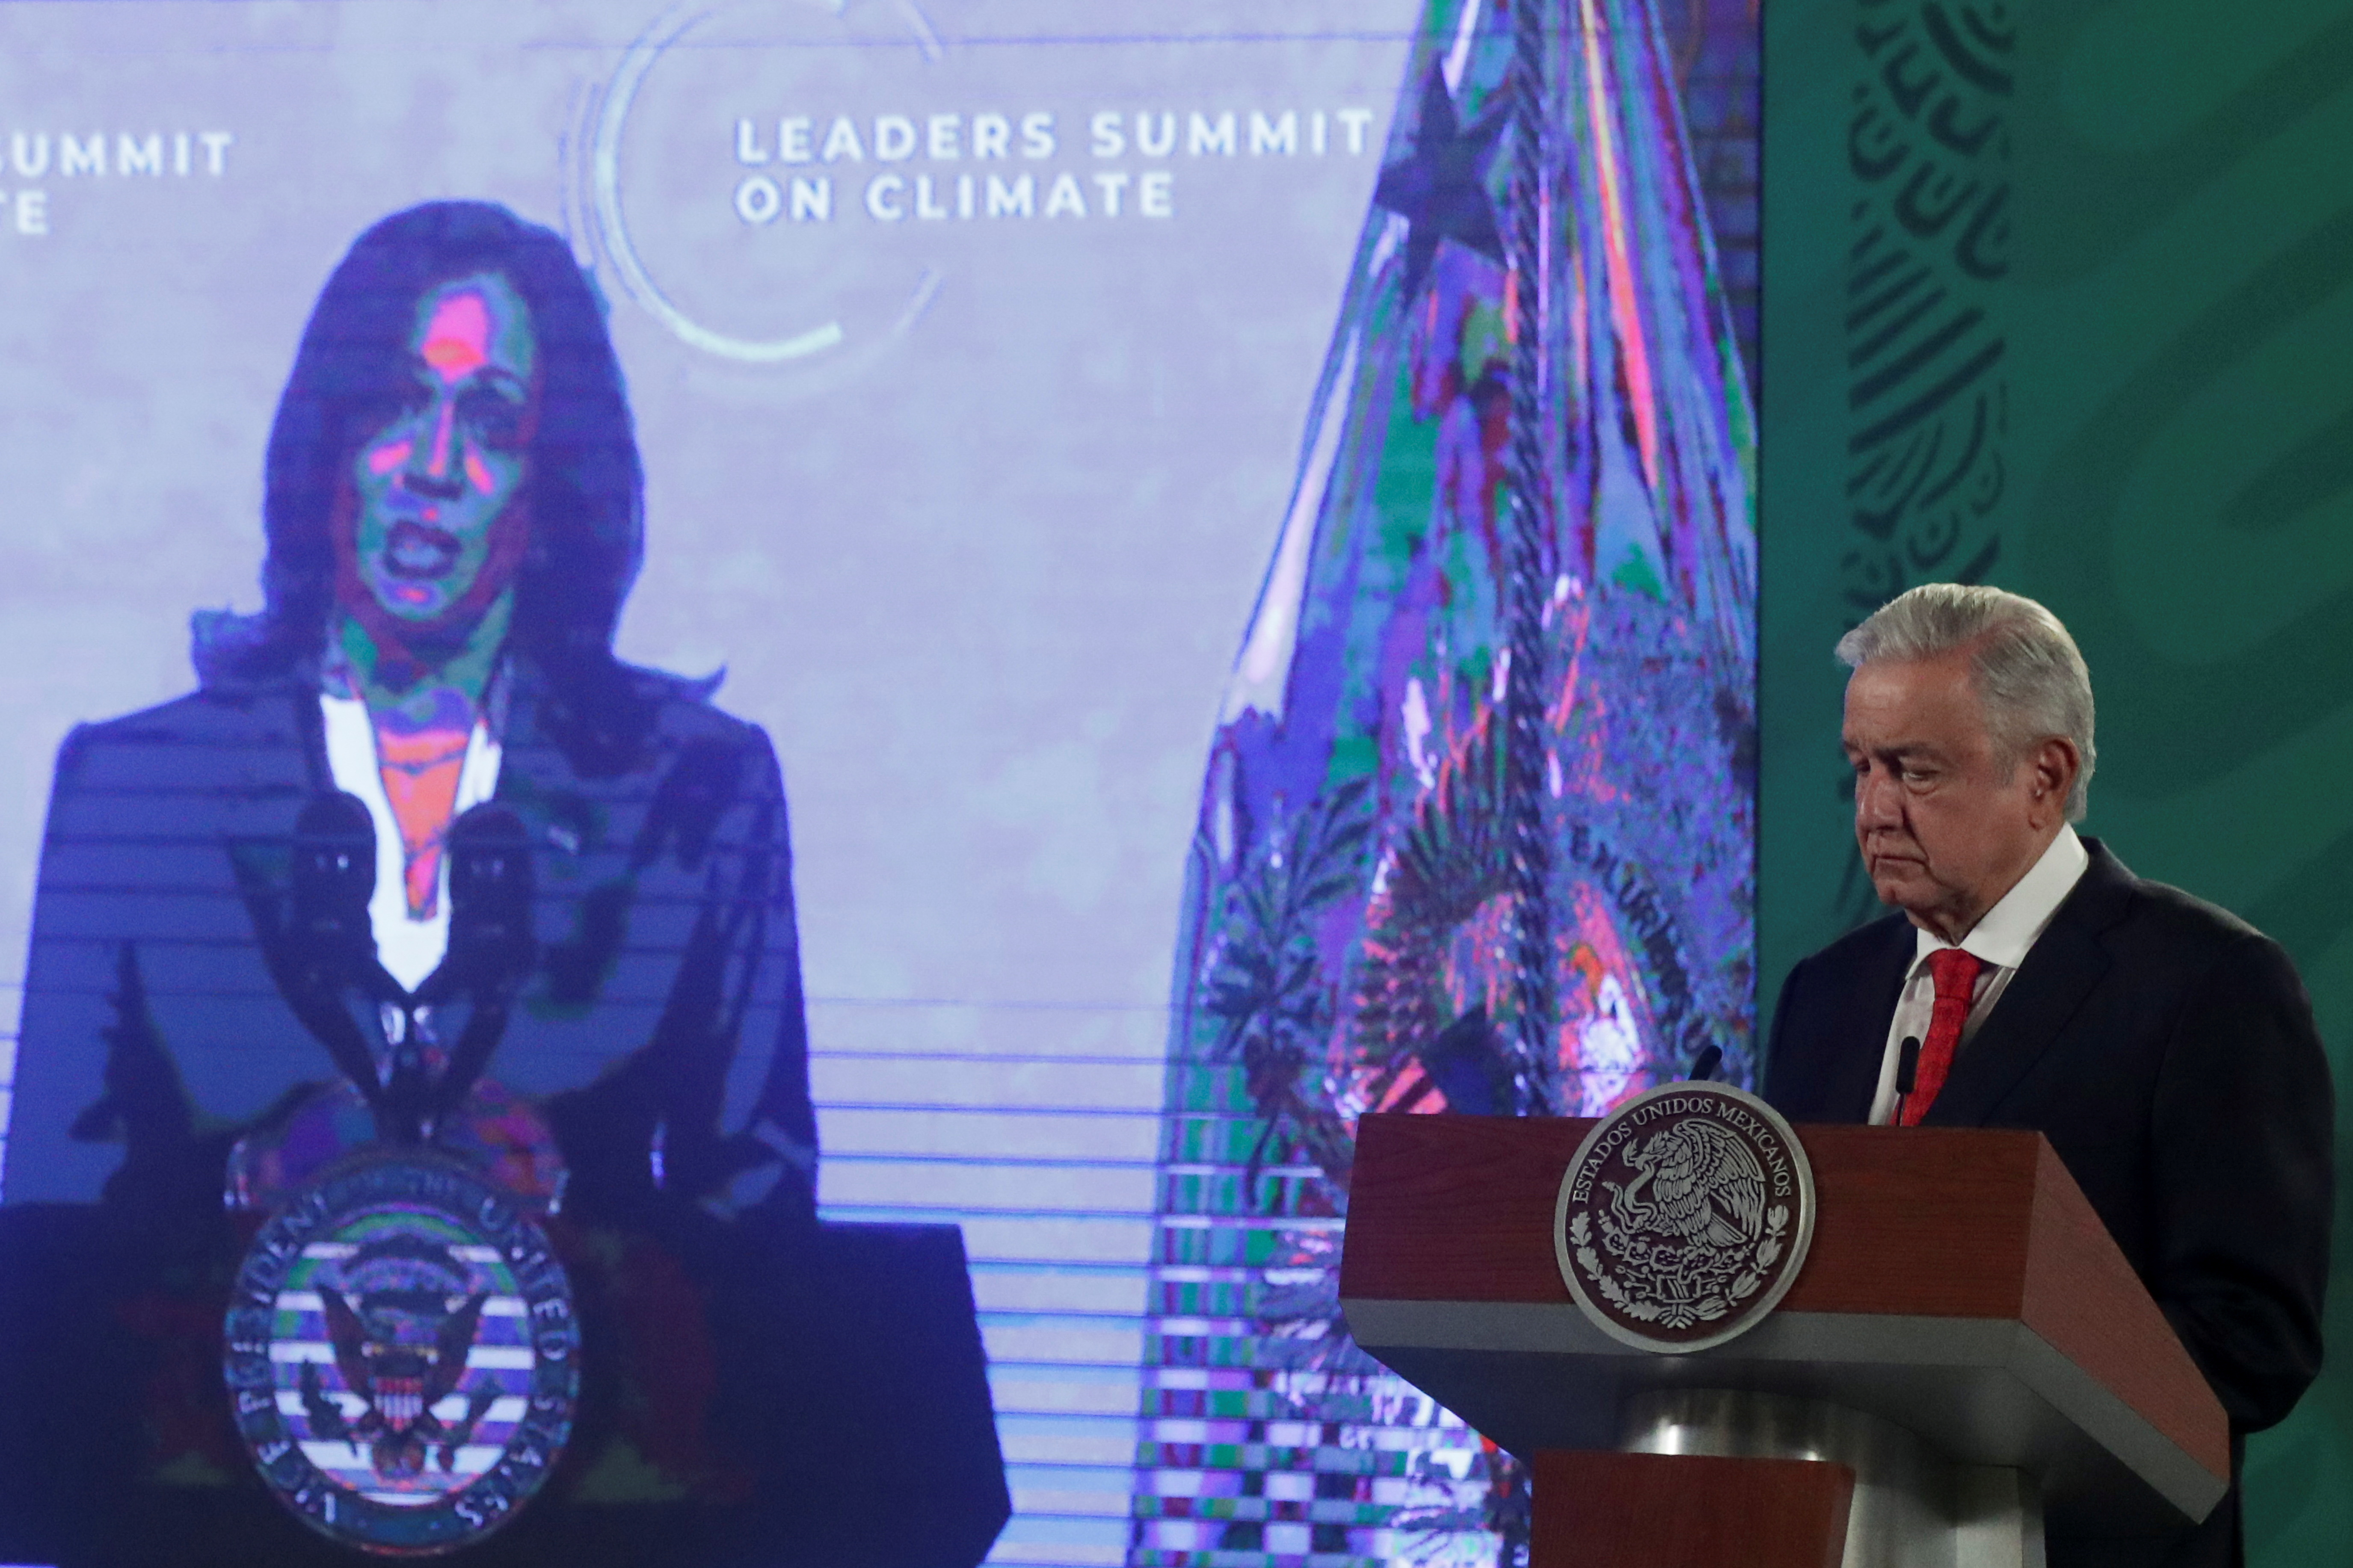 File photo: U.S. Vice President Kamala Harris is seen on the screen as Mexico's President Andres Manuel Lopez Obrador attends a virtual U.S. global climate summit, at the National Palace in Mexico City, Mexico, April 22, 2021. REUTERS/Henry Romero